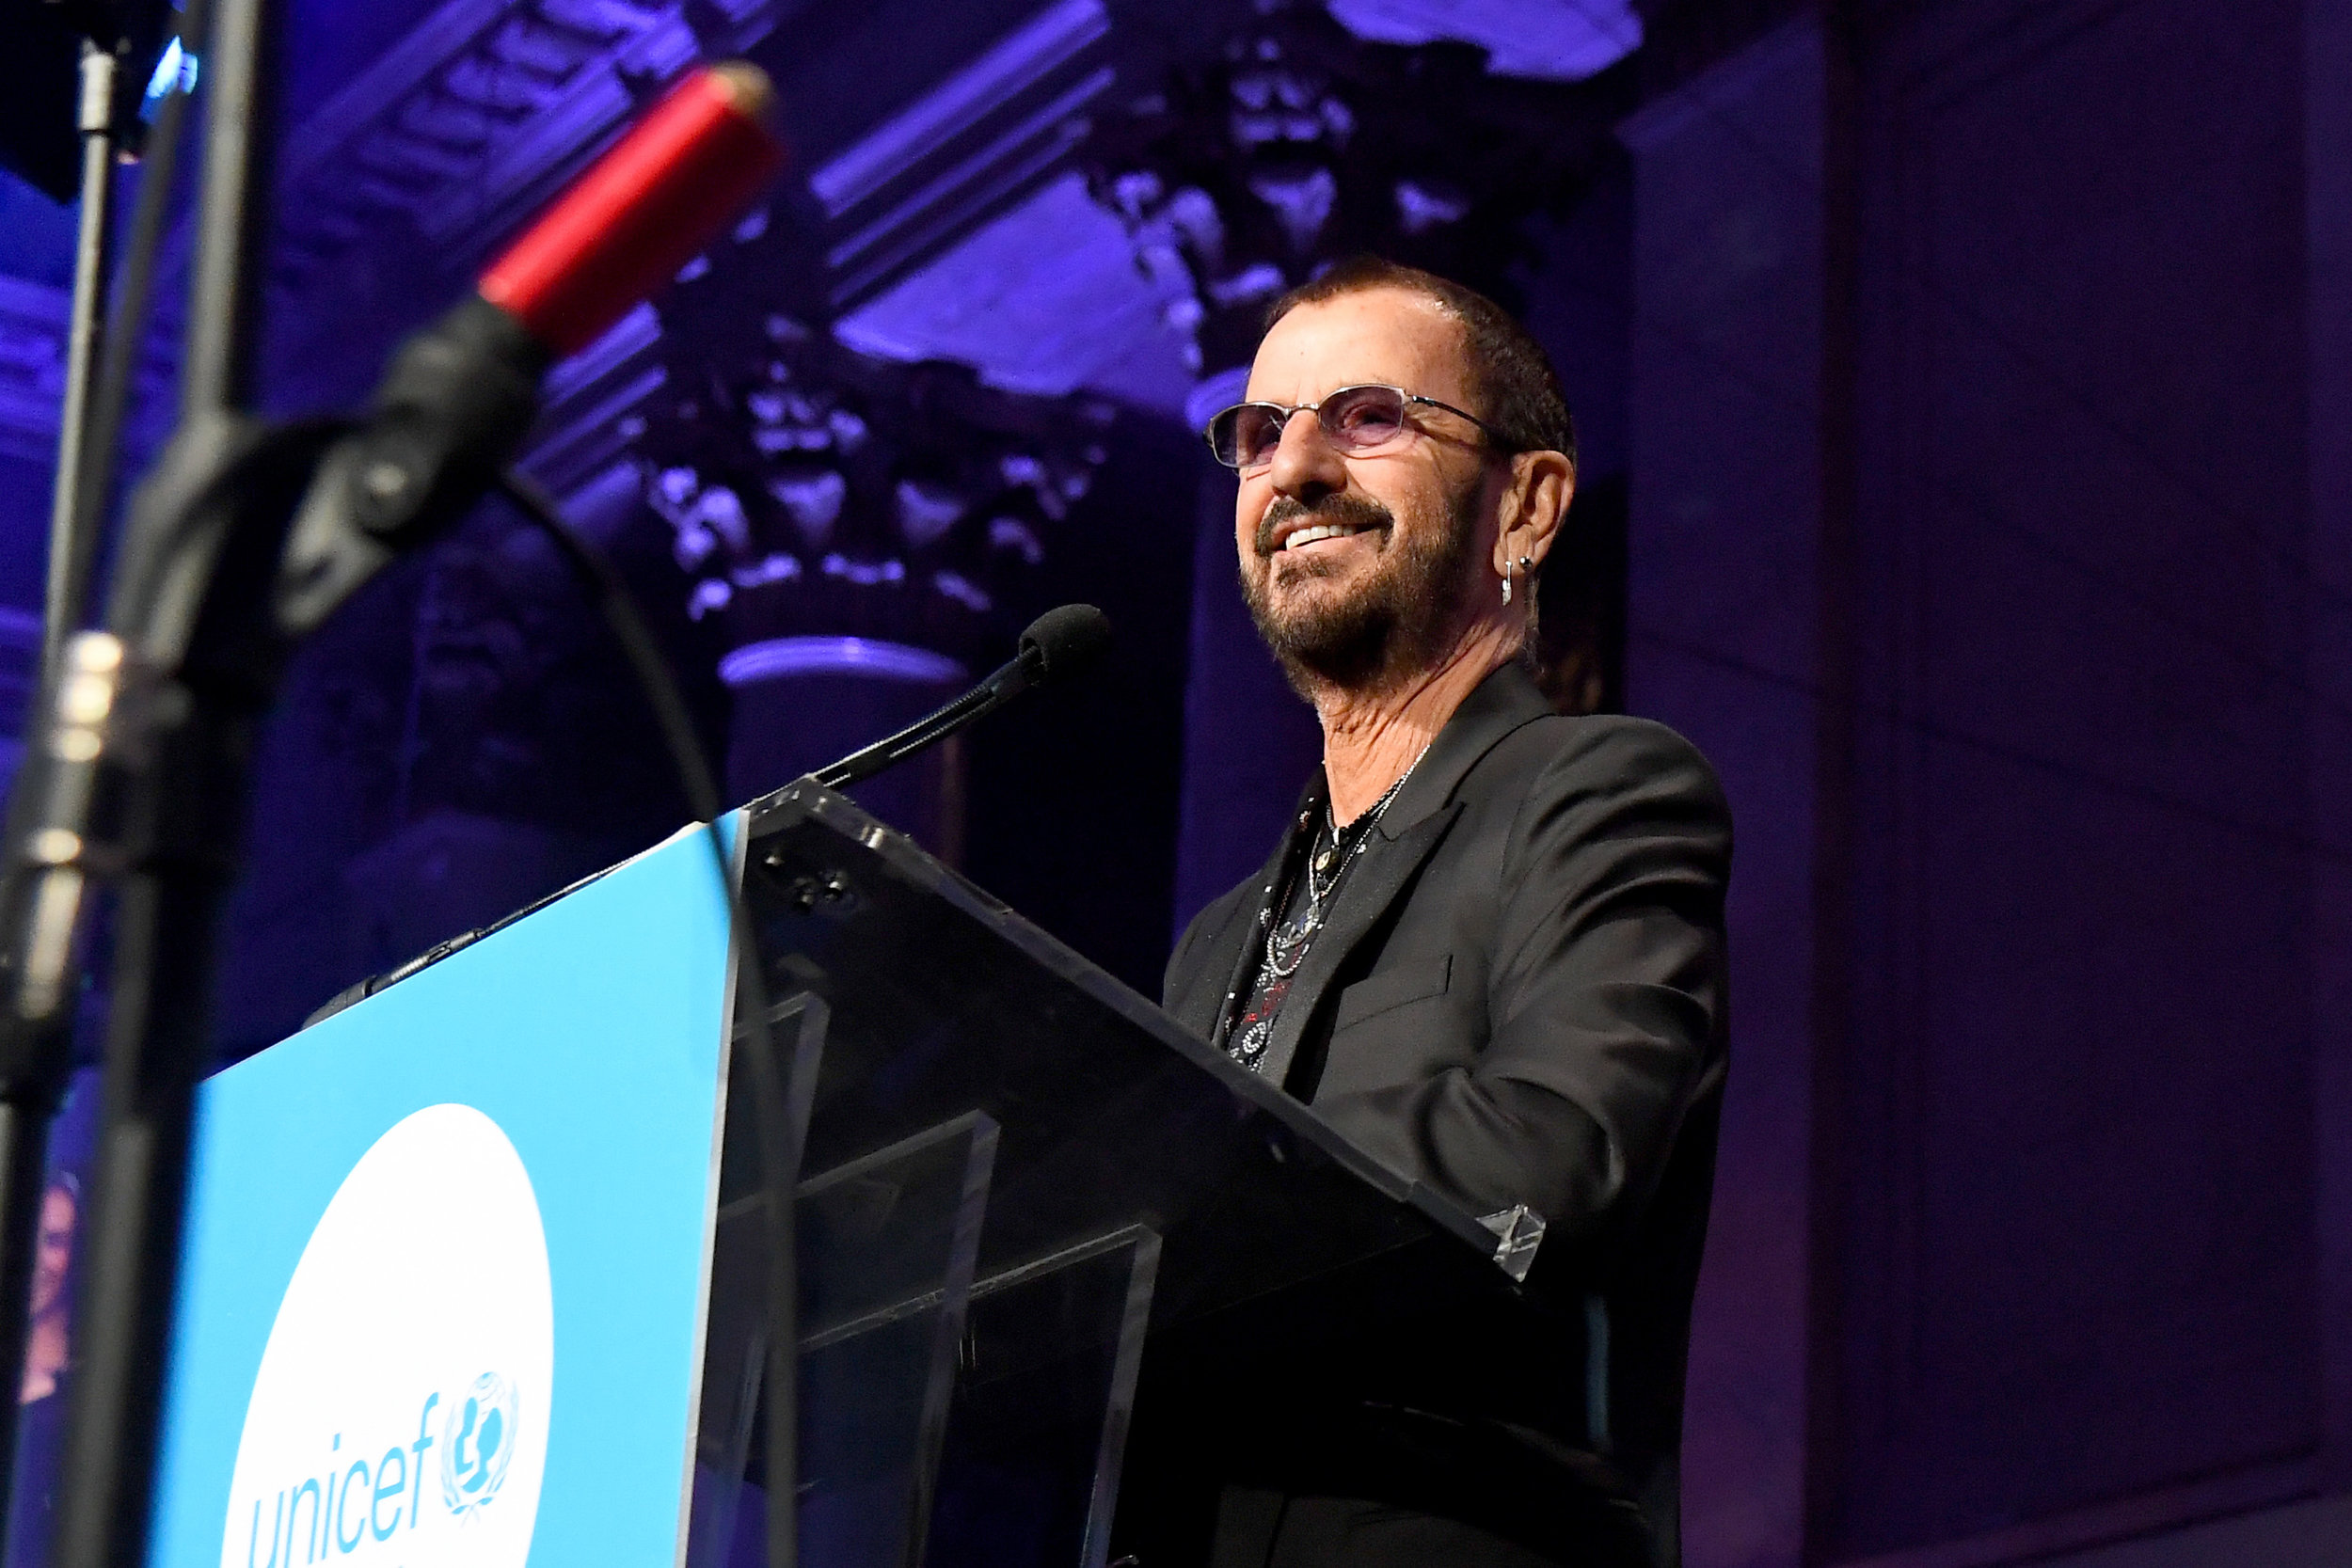 NEW YORK, NY - NOVEMBER 27: Honoree Sir Ringo Starr speaks onstage during the 14th Annual UNICEF Snowflake Ball 2018 on November 27, 2018 in New York City. (Photo by Nicholas Hunt/Getty Images for UNICEF)